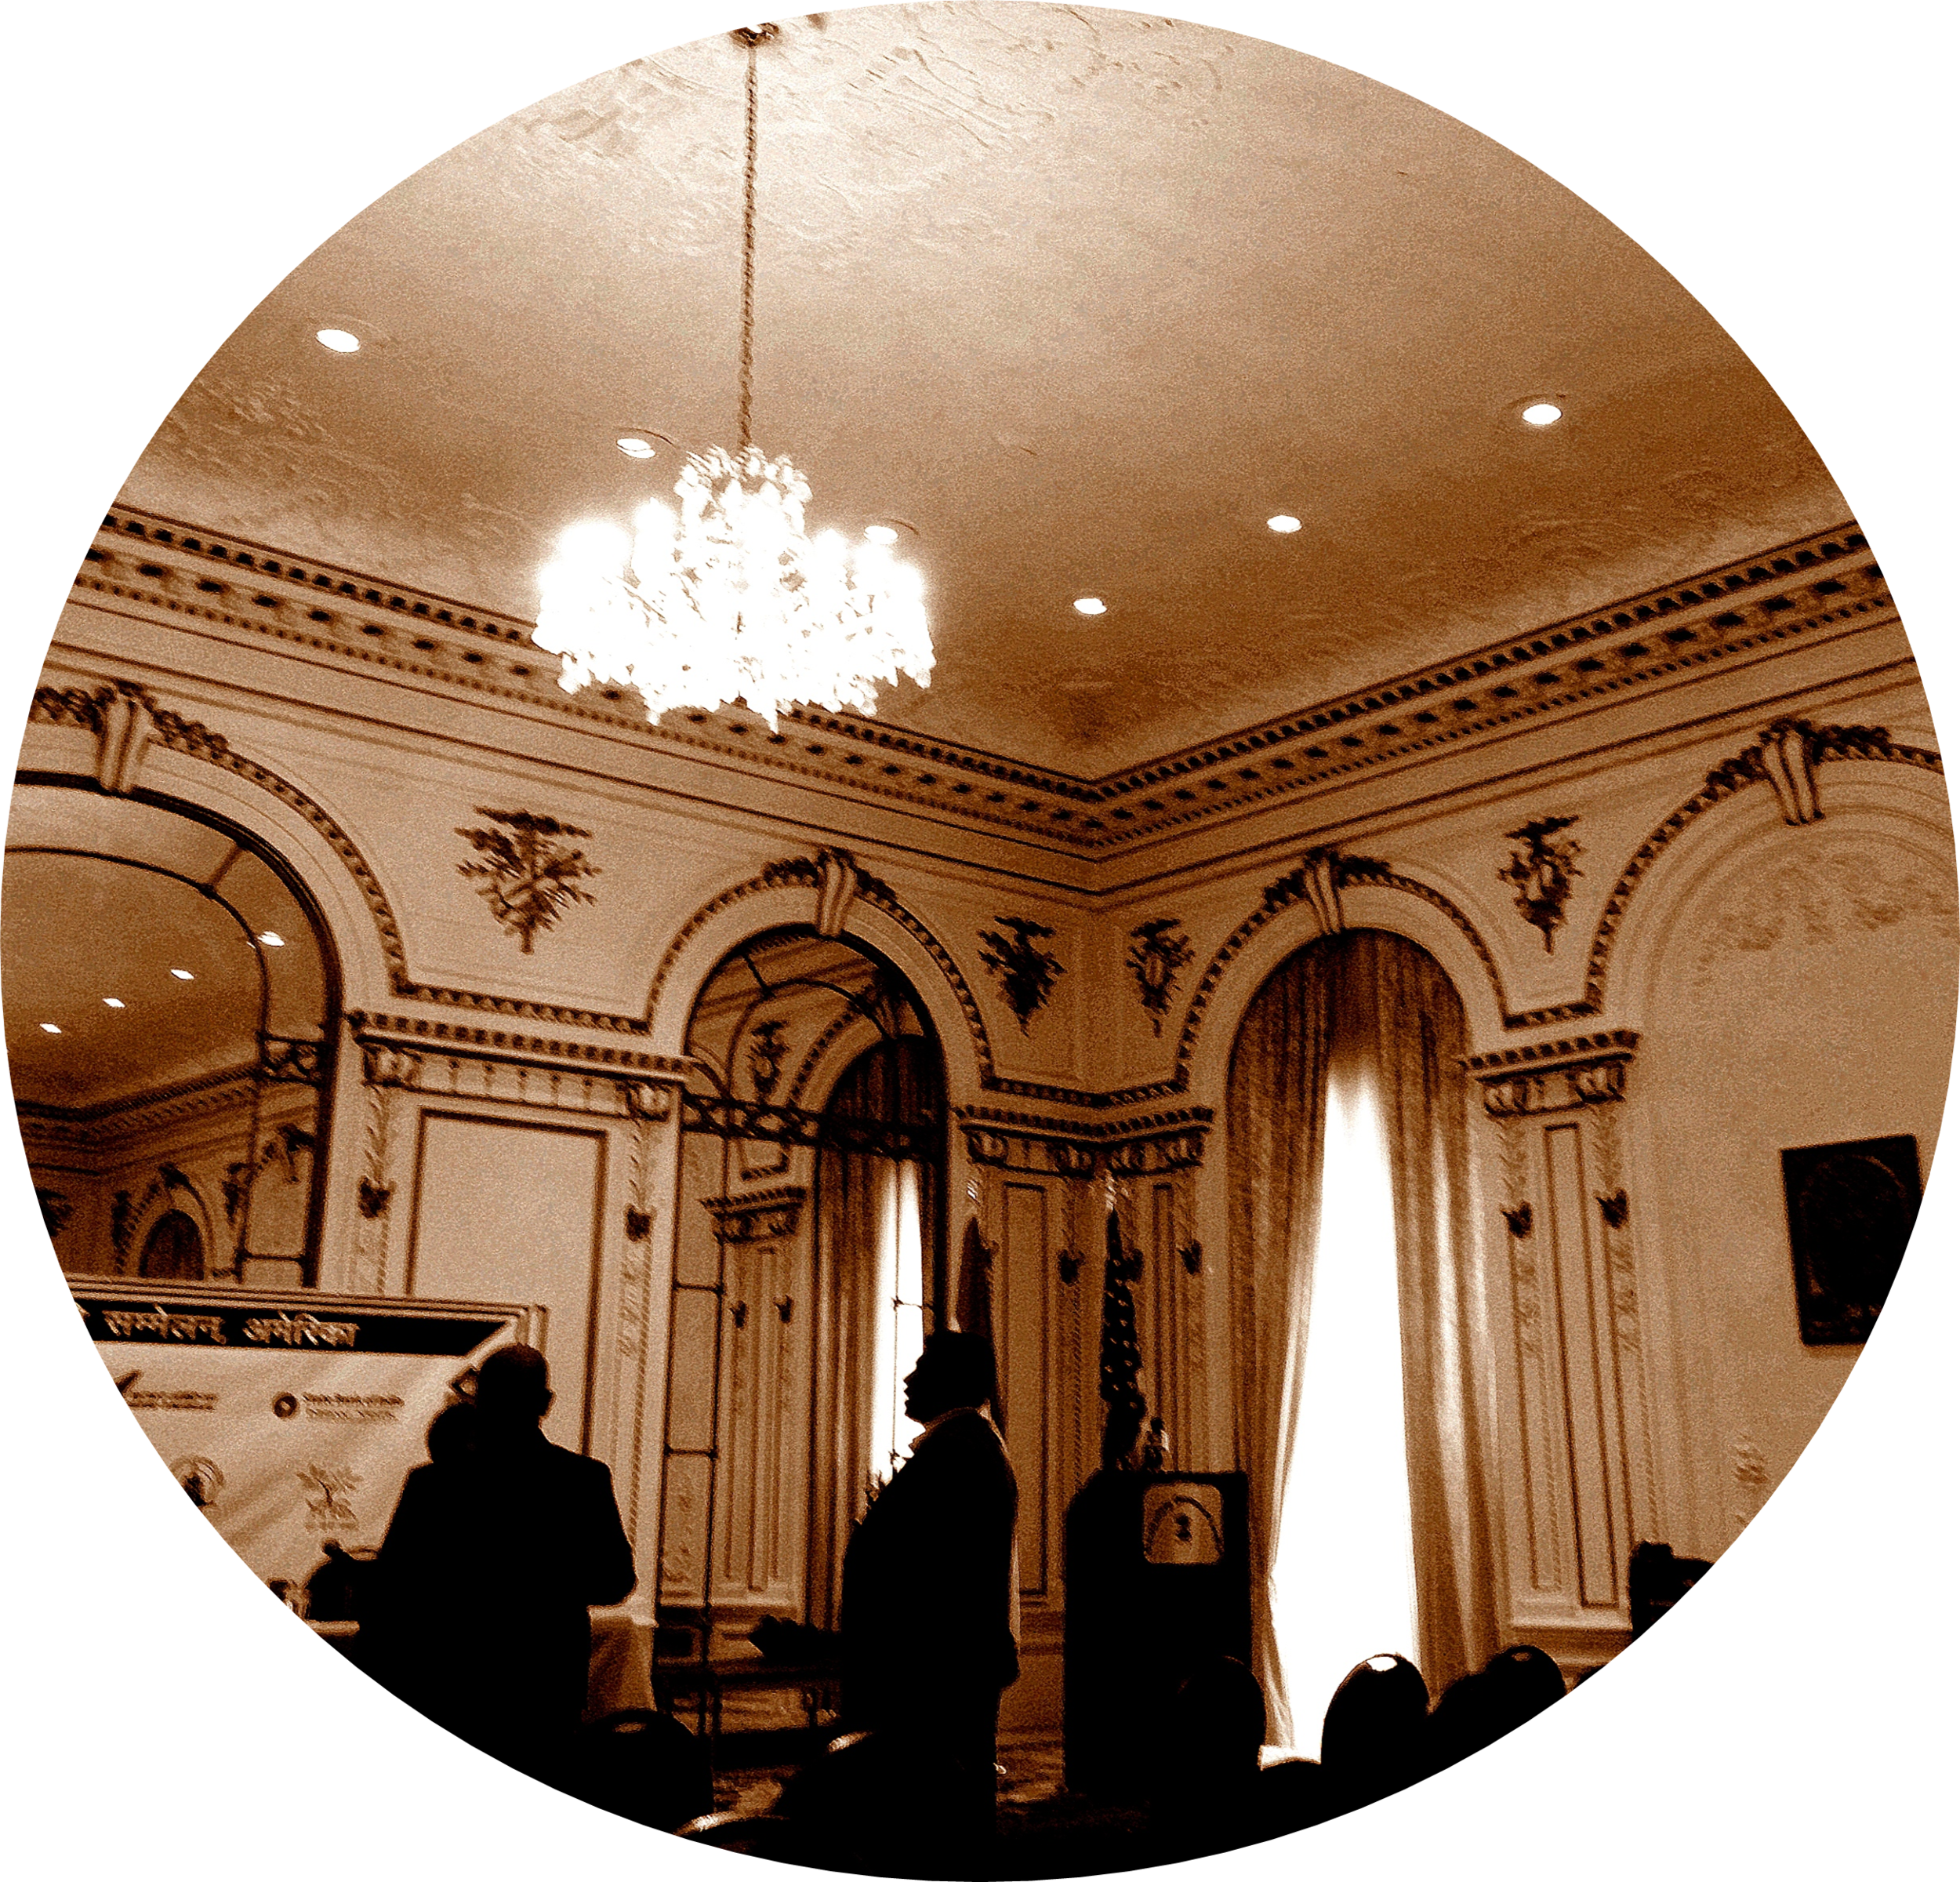 Ballroom at the Consulate General -- Source: Akhil Sud, SM '16